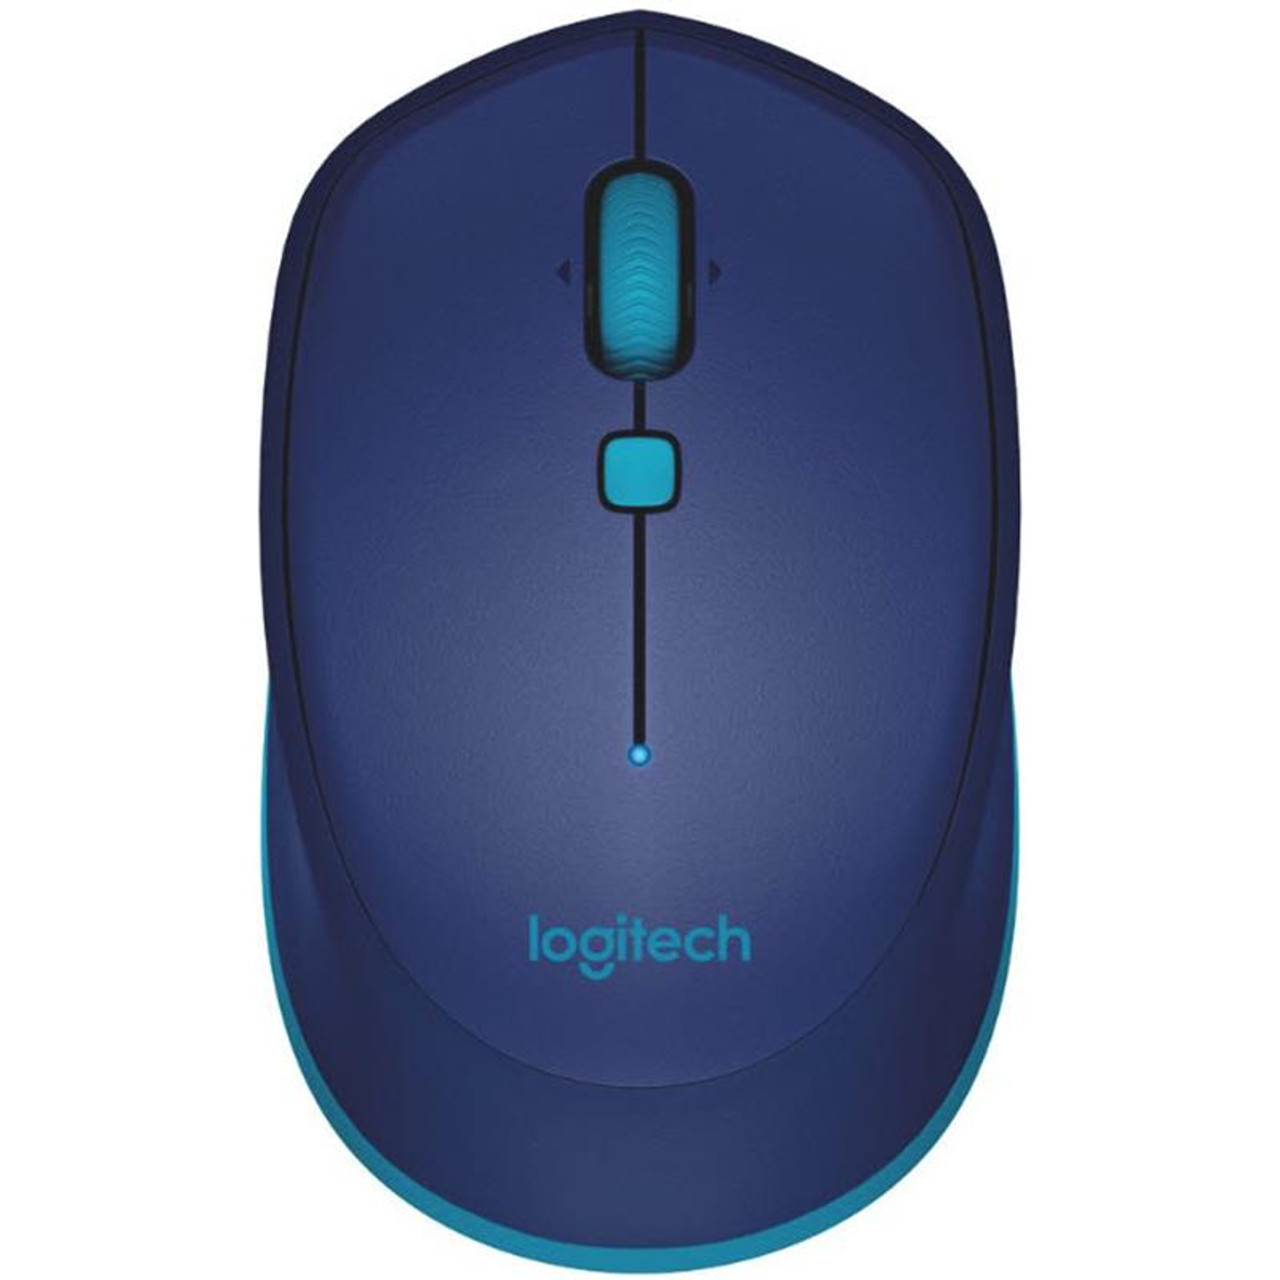 dd3416d3a06 Logitech M337 Bluetooth Mouse -Blue | Logitechshop